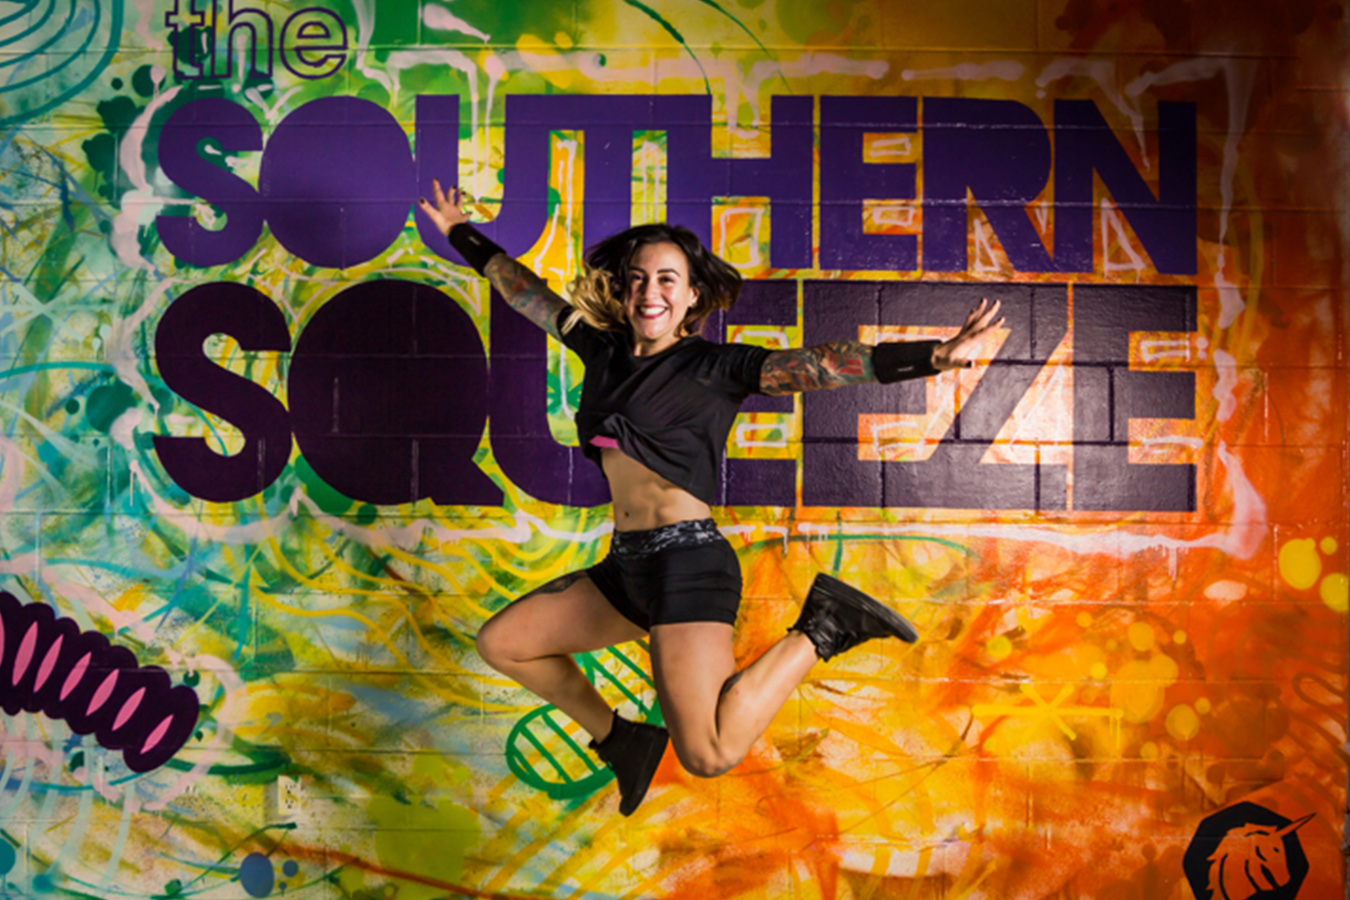 southernsqueeze